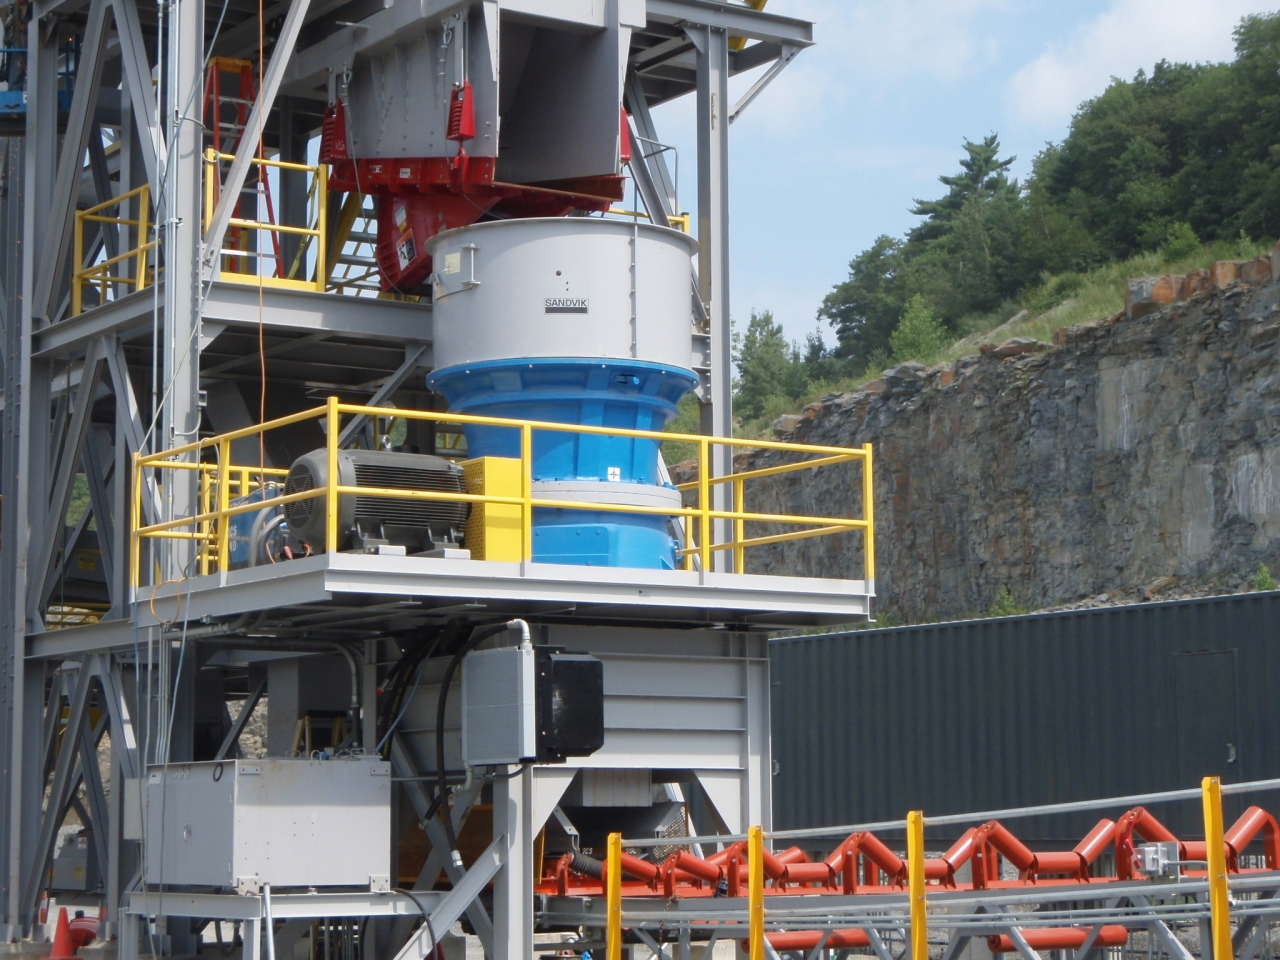 Material Handling Crushing Equipment - Sandvik Industrial Cone Crusher